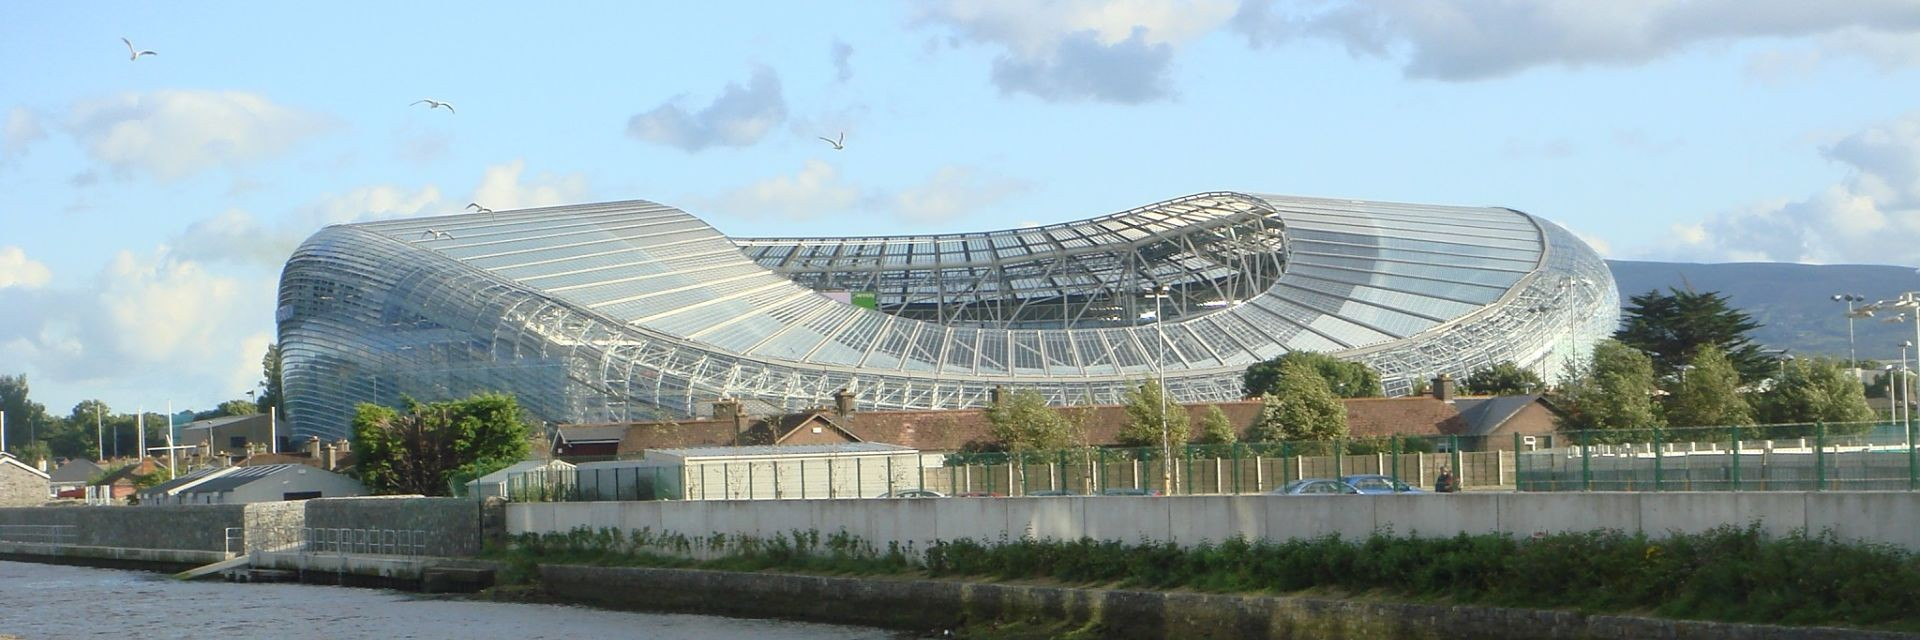 Aviva Stadium - Meeting 2016